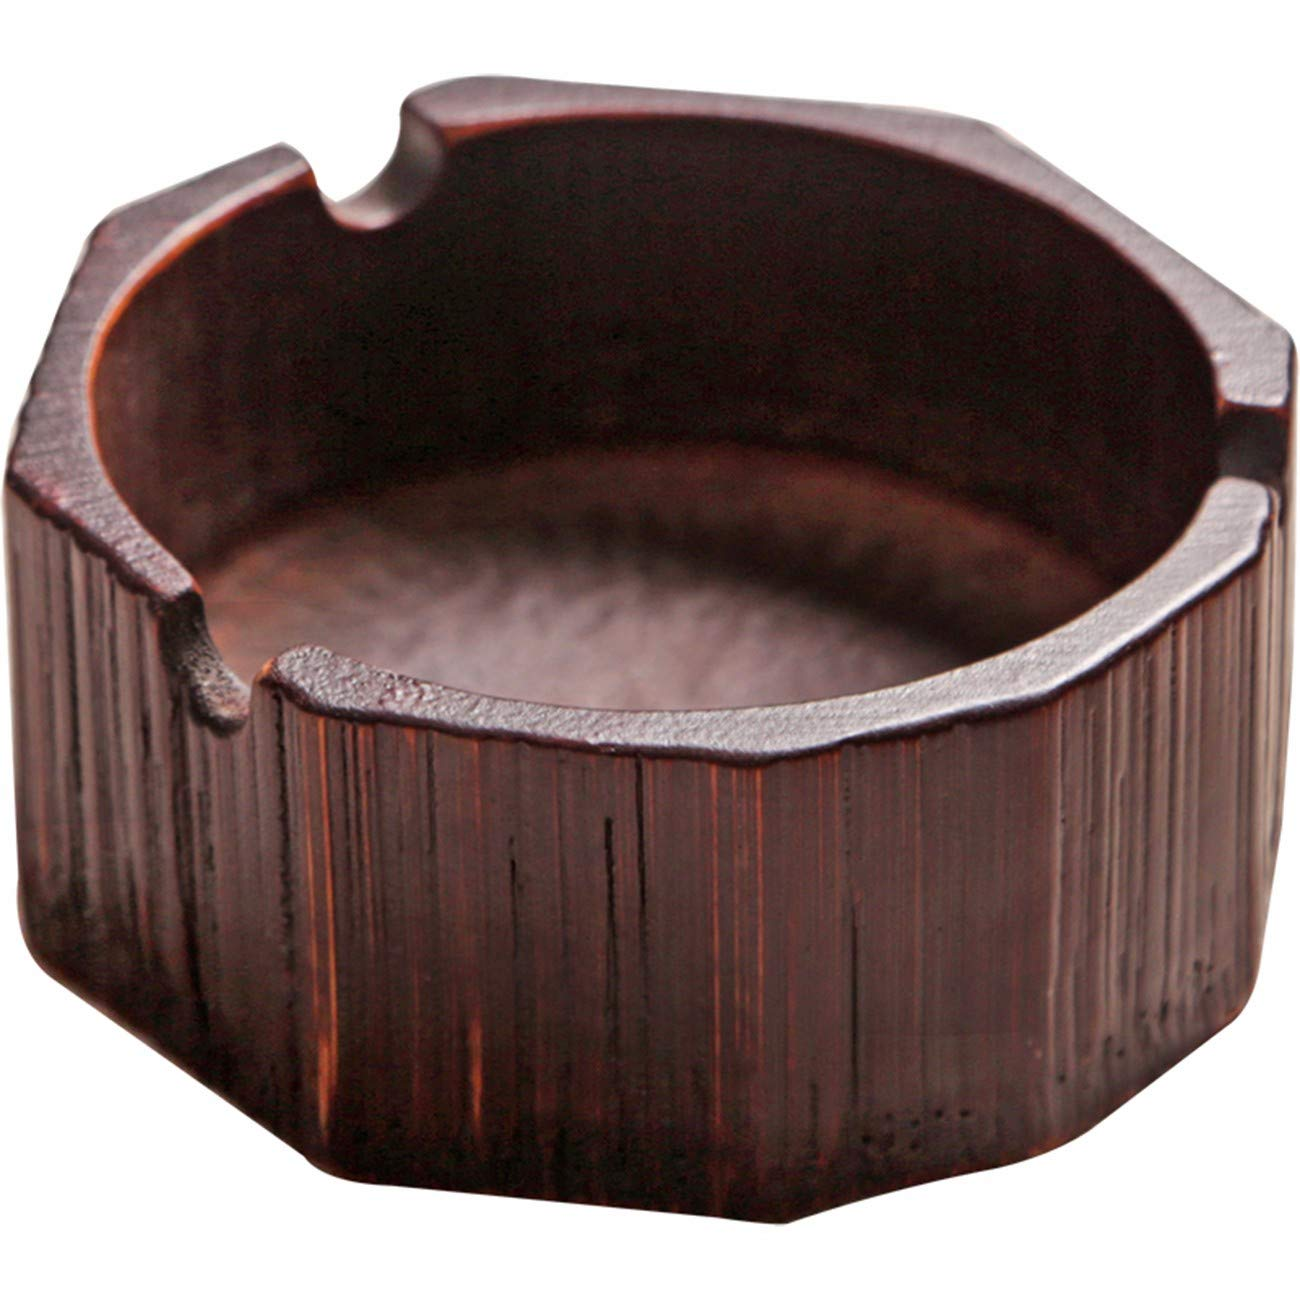 QPGGP-ashtray Bamboo Antique Ash Tray, Creative Solid Wood, Ashtray, Living Room, Multifunctional Office, Household Ornaments